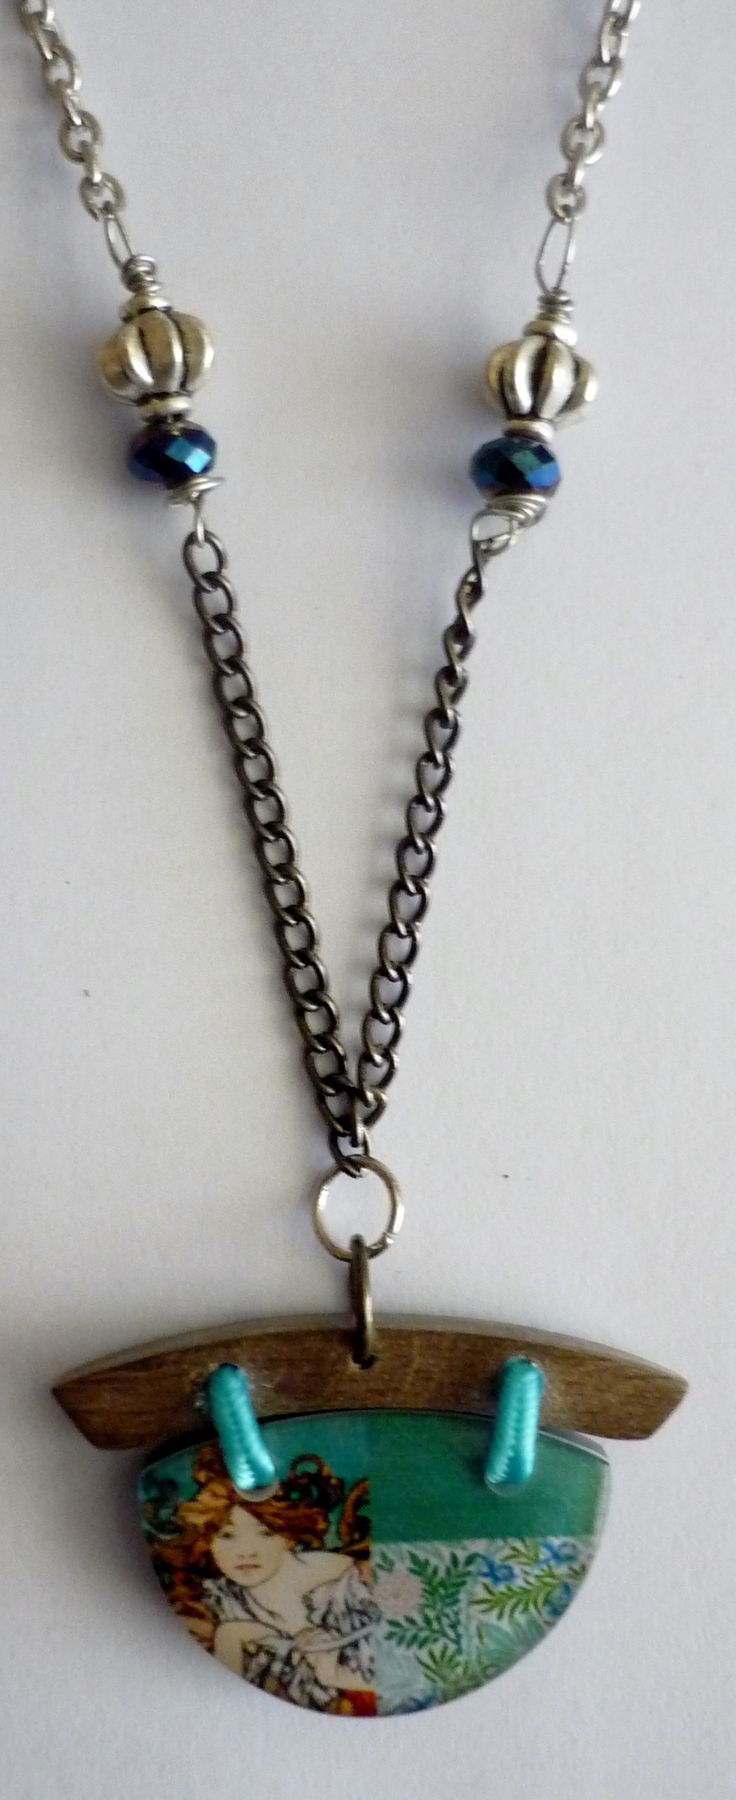 Amanda Harris Half-moon shape pendent with girl image on nickel/silver chain with silver turk caps and beads.